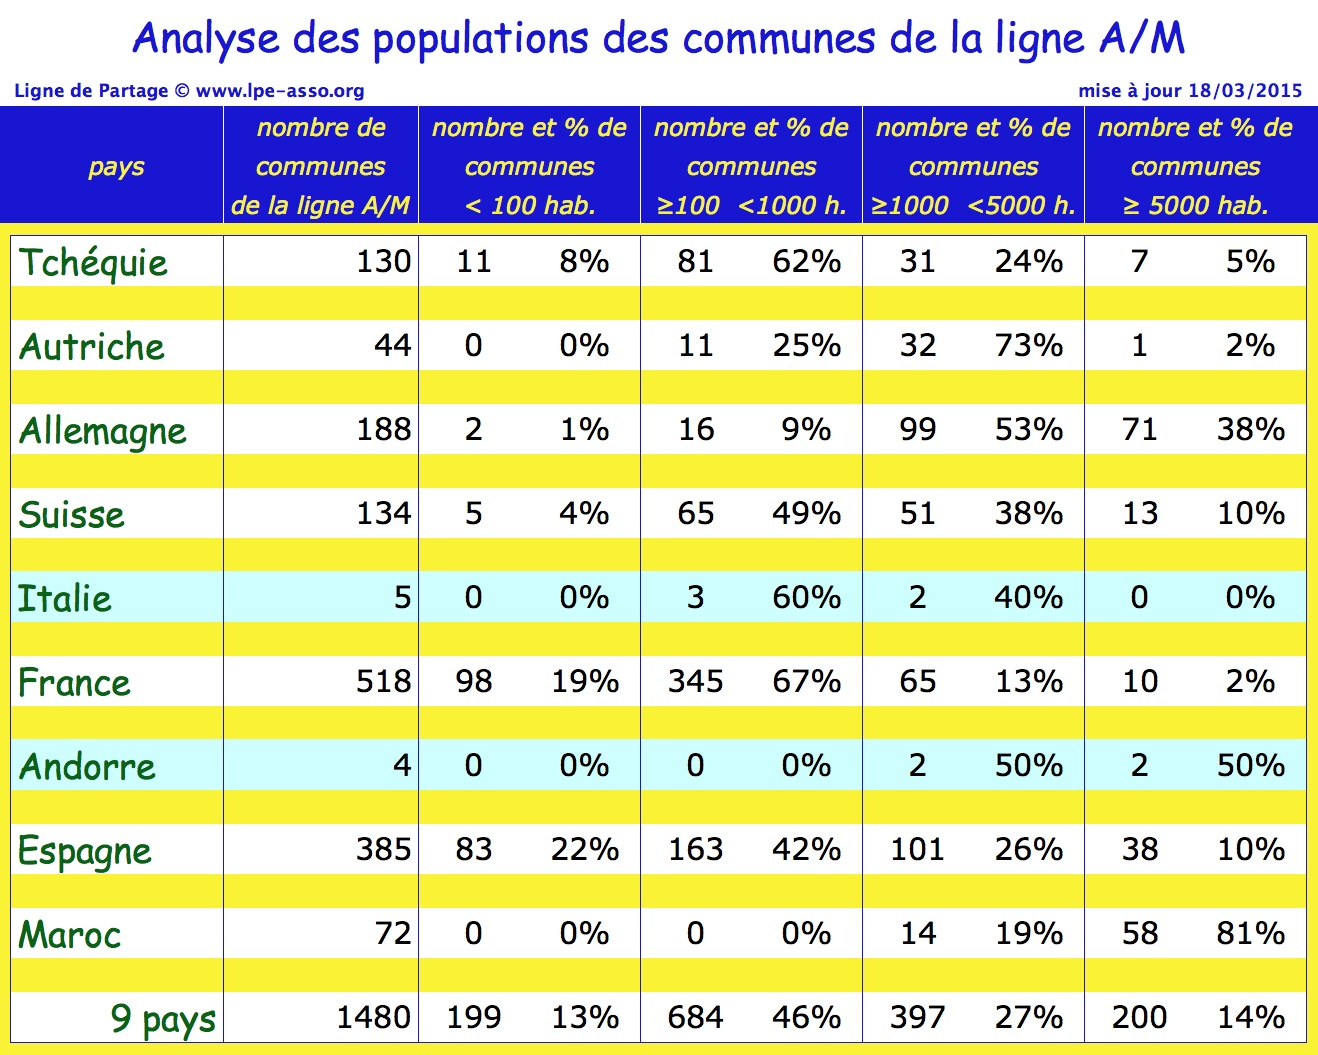 au analyse population communes